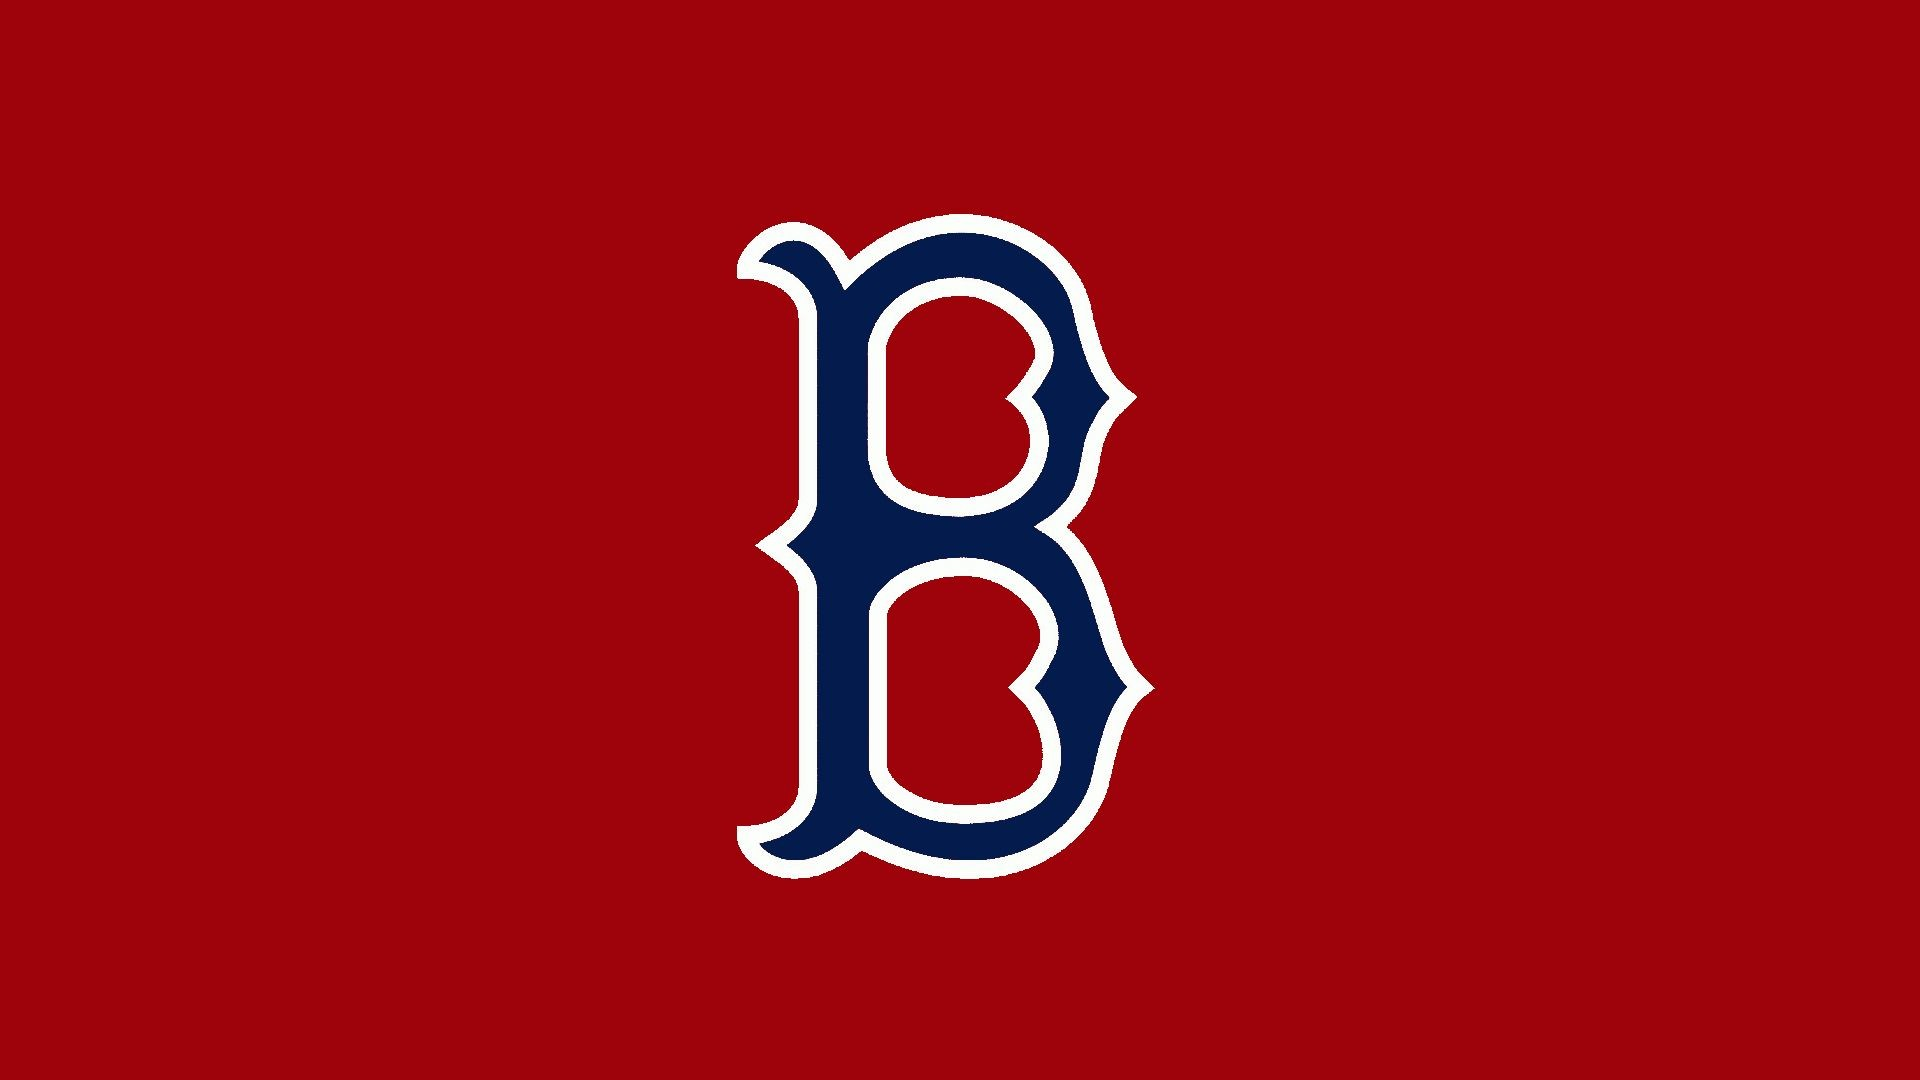 1920x1080 Boston, Red, So, HD, Wallpaper, Boston Baseball Team, Sport .